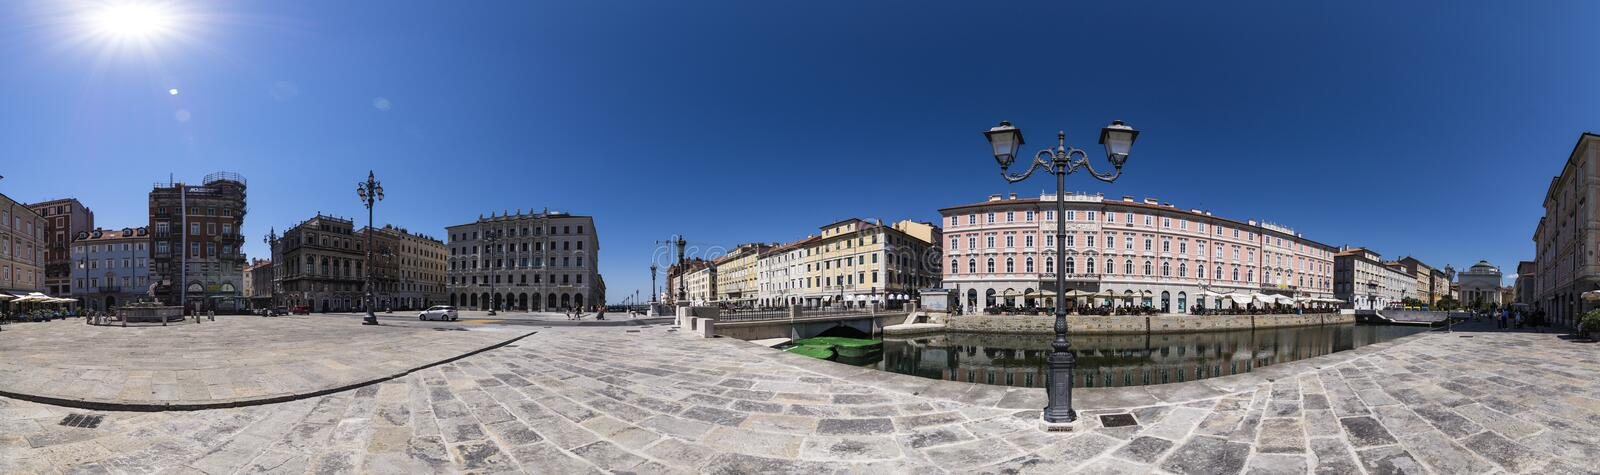 Panoramic photo with the Grand Canal of Trieste and the Piazza del Ponte Rosso, Trieste, Italy. Panoramic photograph of the Grand Canal of Trieste and the Piazza stock photos